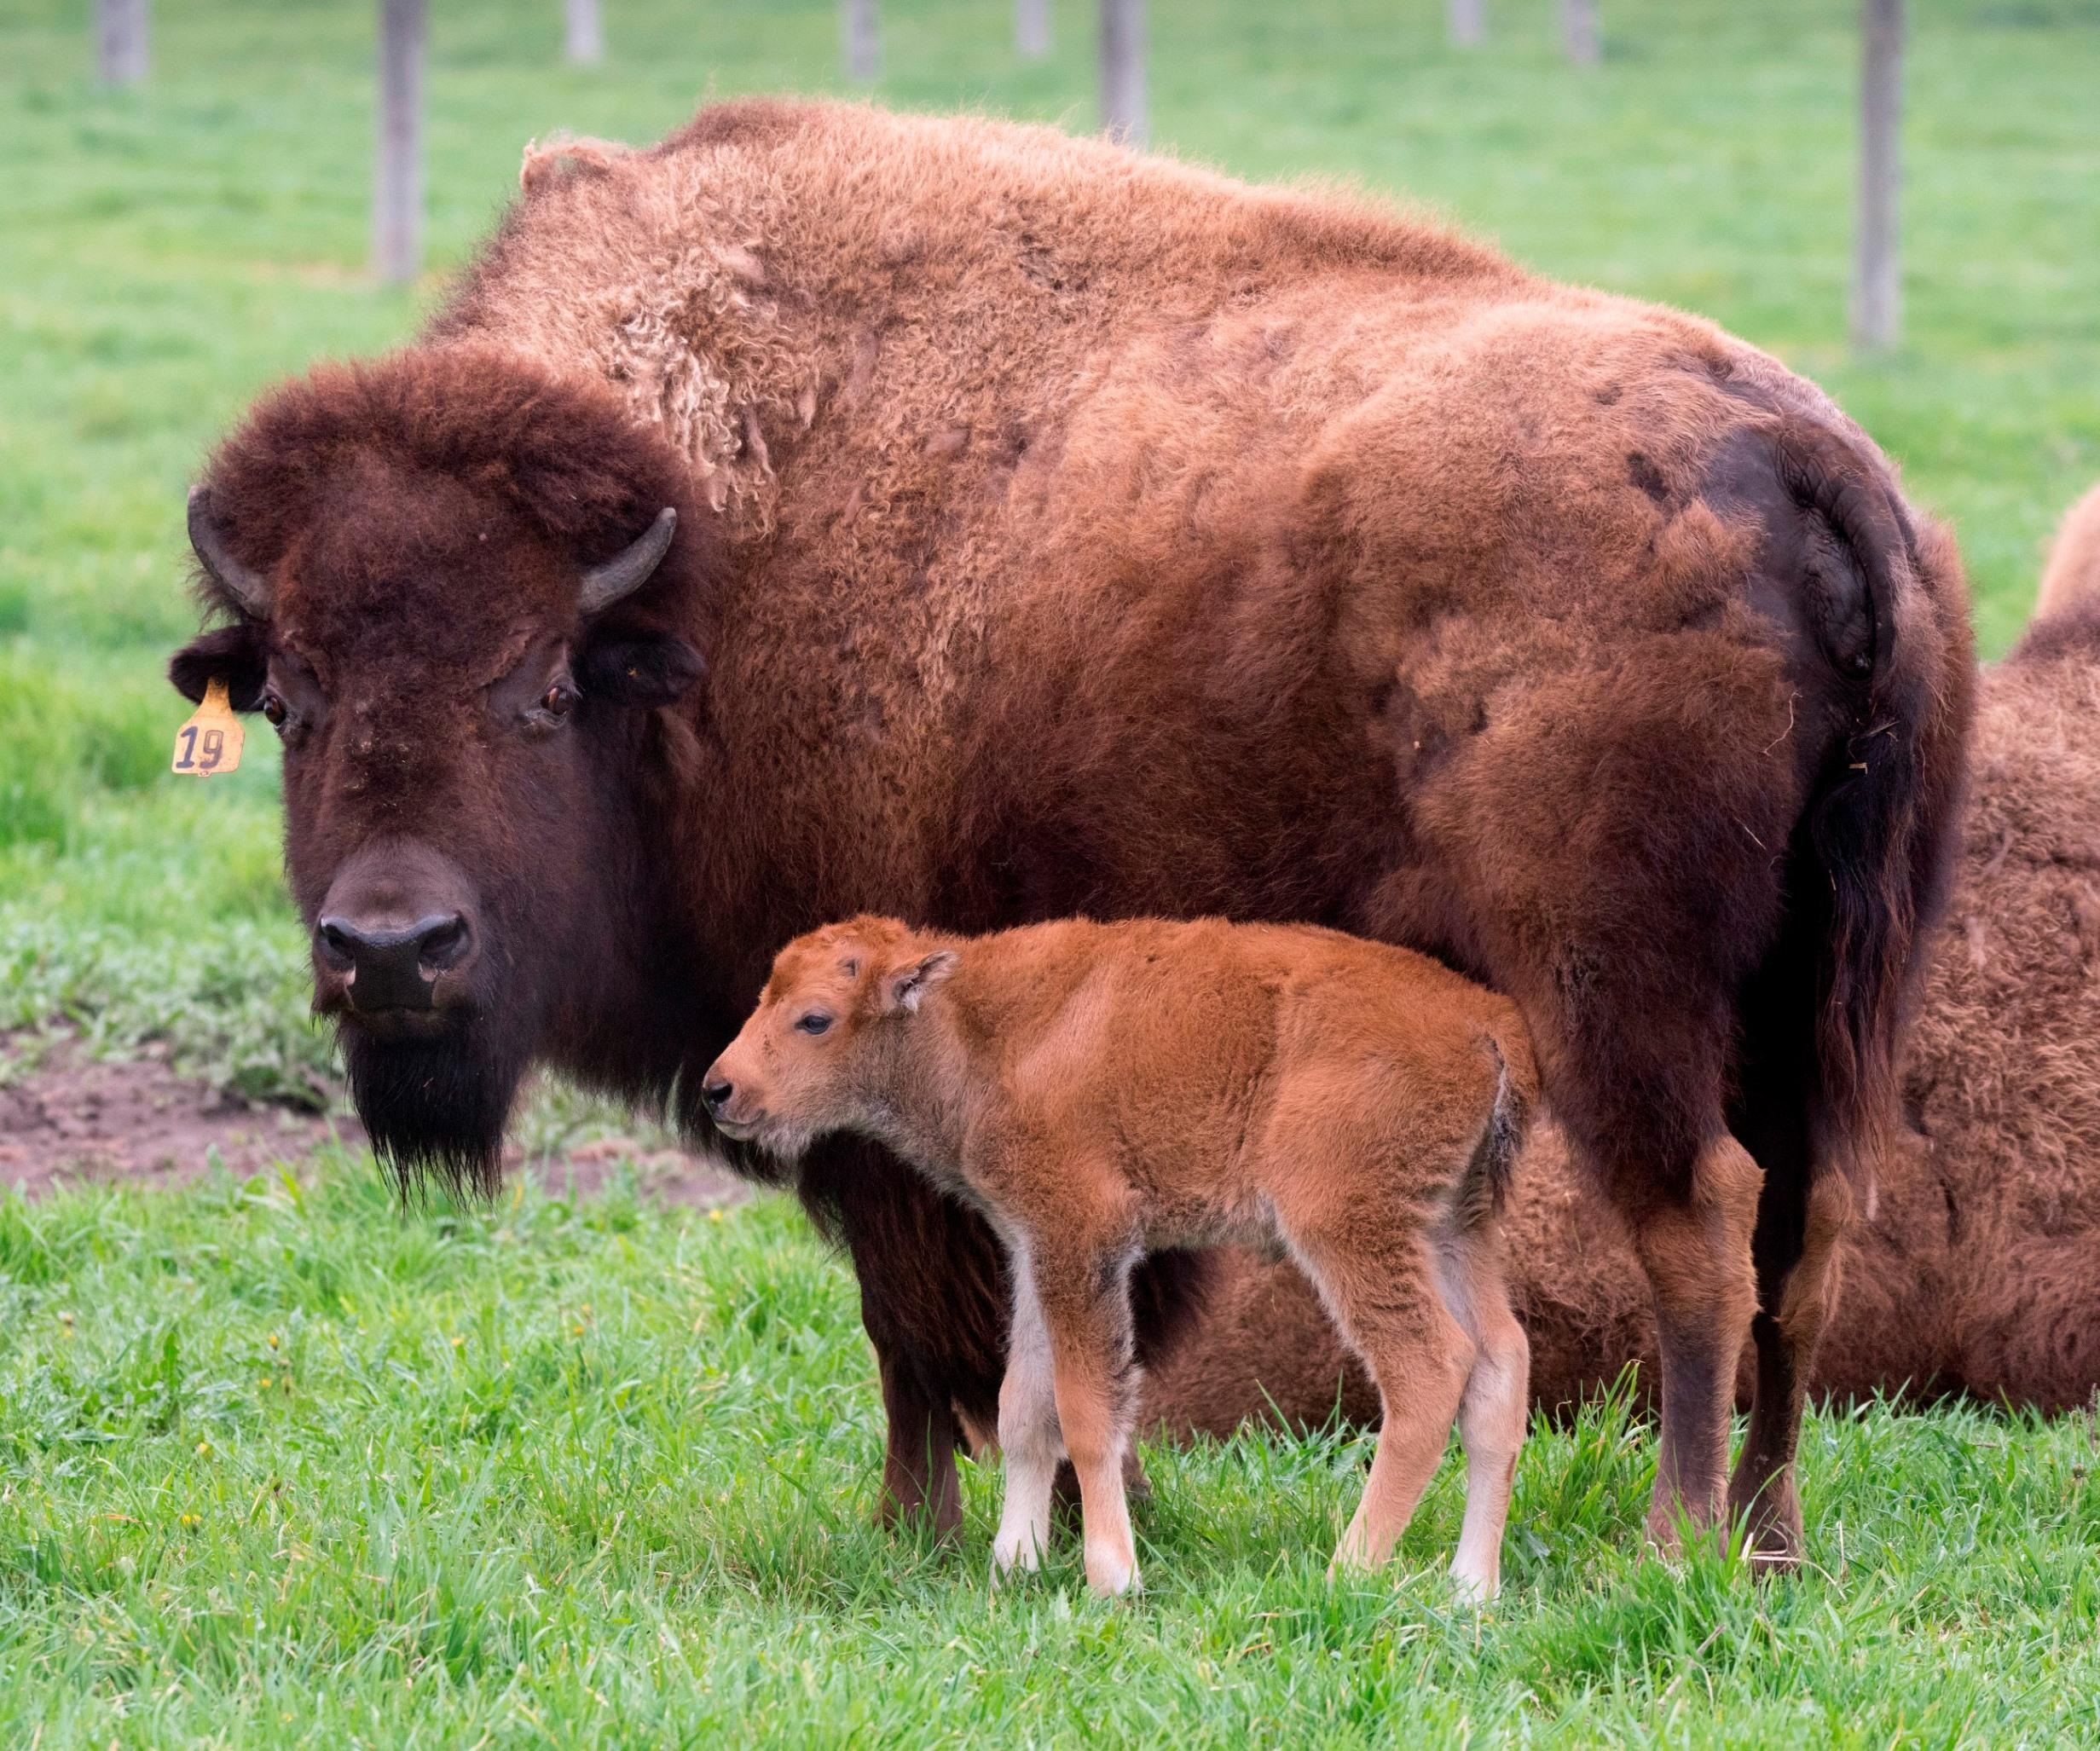 Subarban >> First Bison Born This Year at Fermilab | Chicago Tonight | WTTW